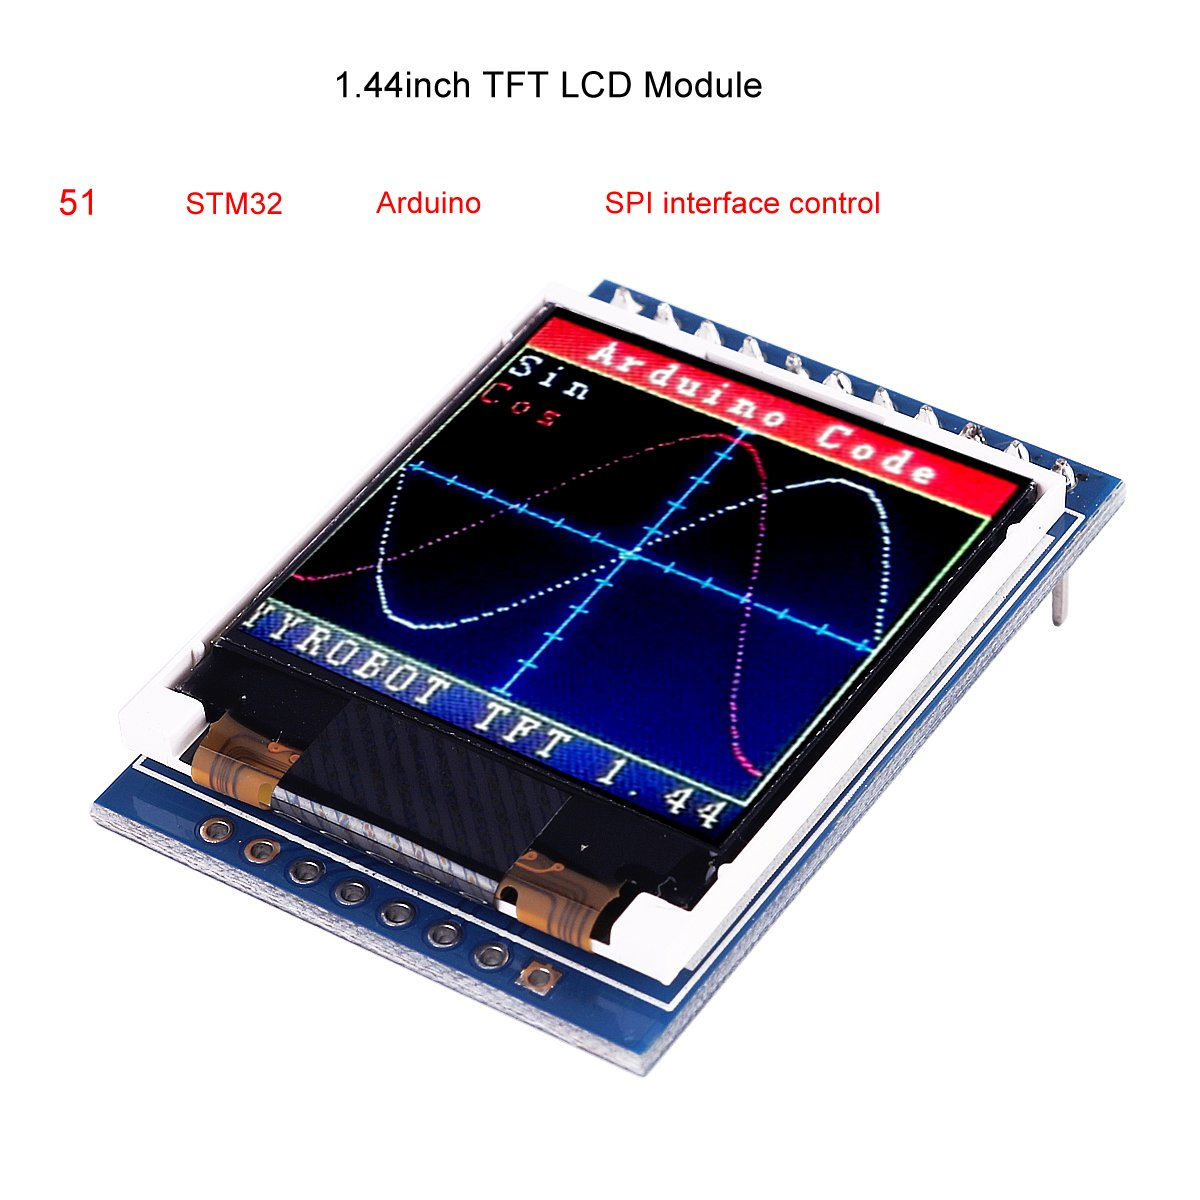 Makerfocus Tft Lcd Screen 144 Inches Module 128x128 Spi Arduino Ys Tech Share Page 2 Picture Graphic Color 51 Stm32 Routines To Replace 5110 Oled 5v For